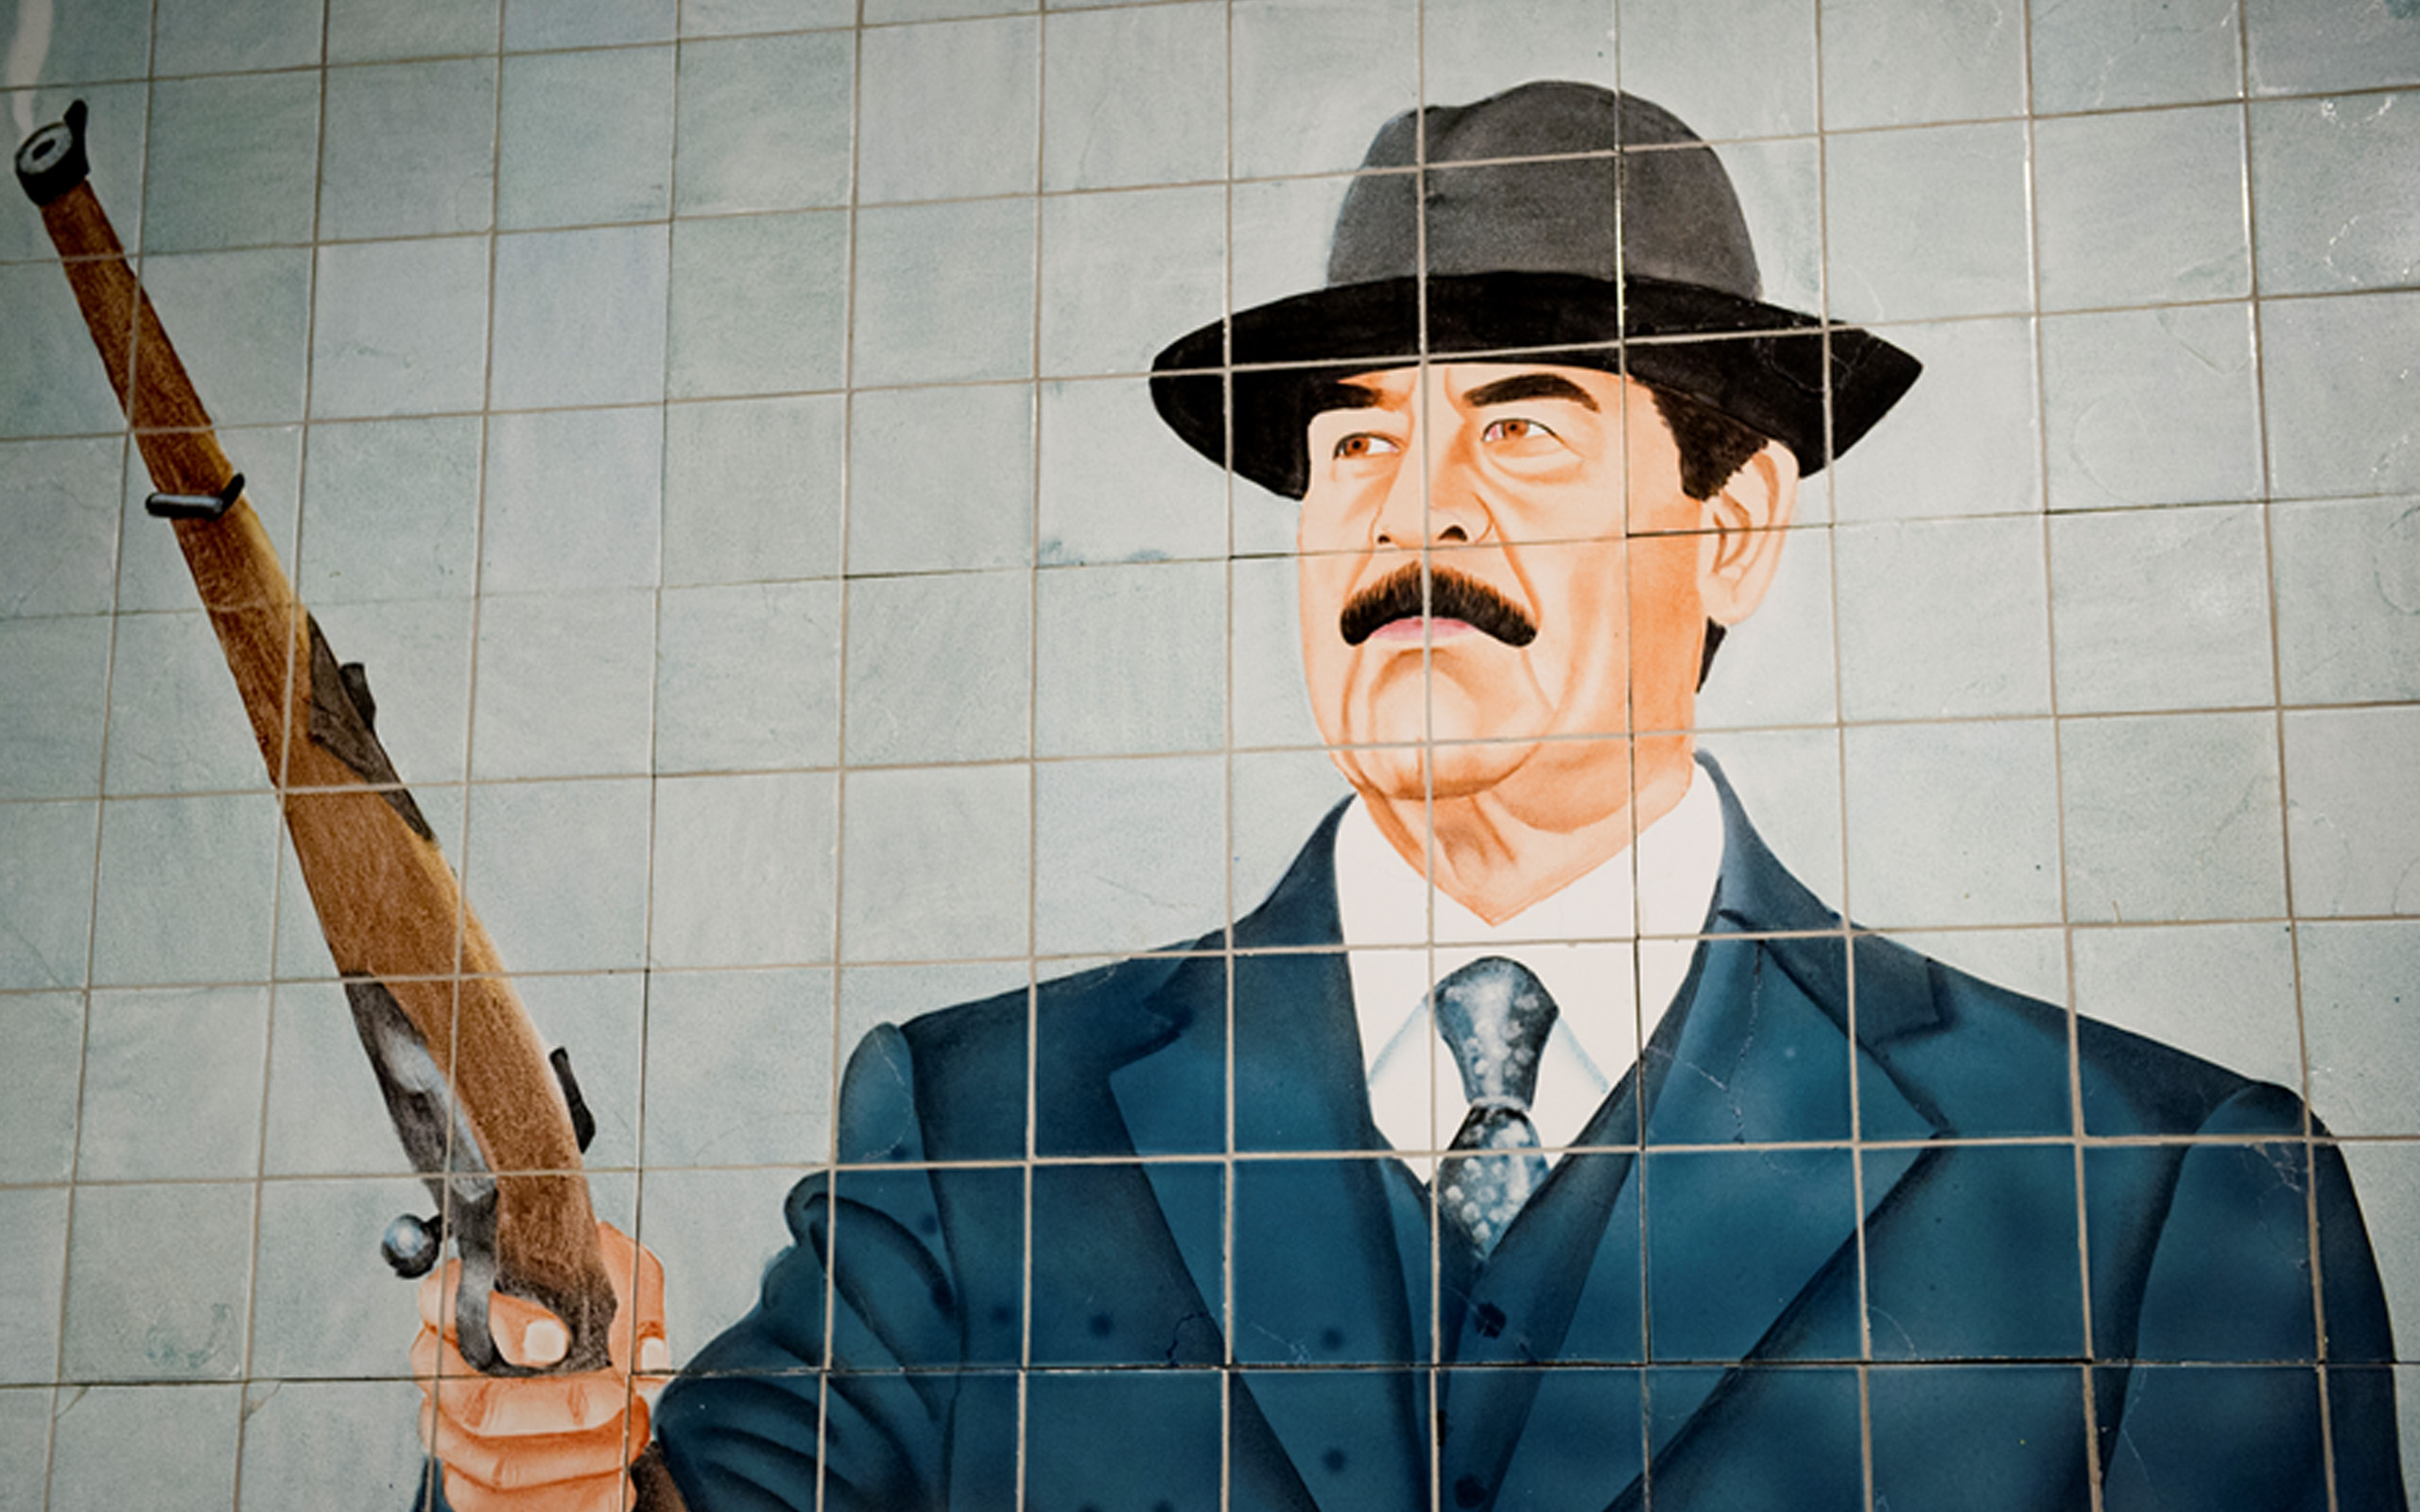 Mosaic mural depicting Saddam Hussein